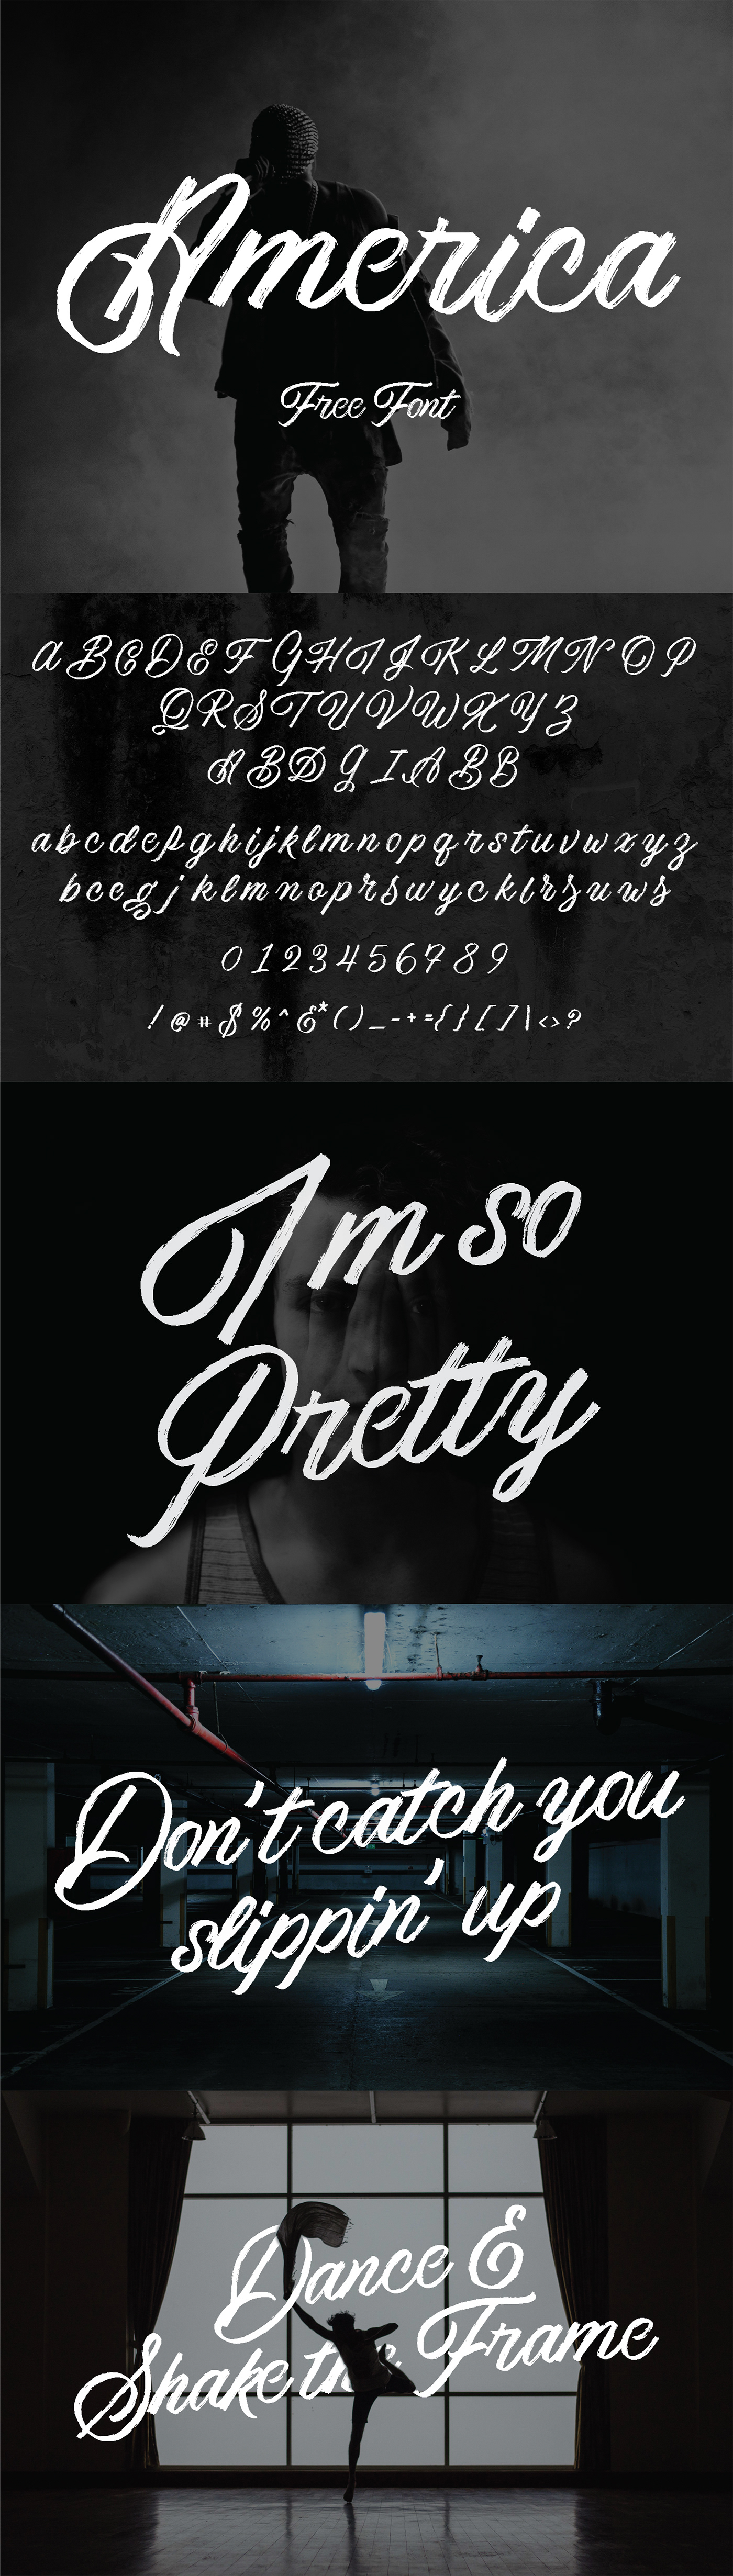 free Free font free fonts freebie Script texture hand drawn vintage commercial use brush